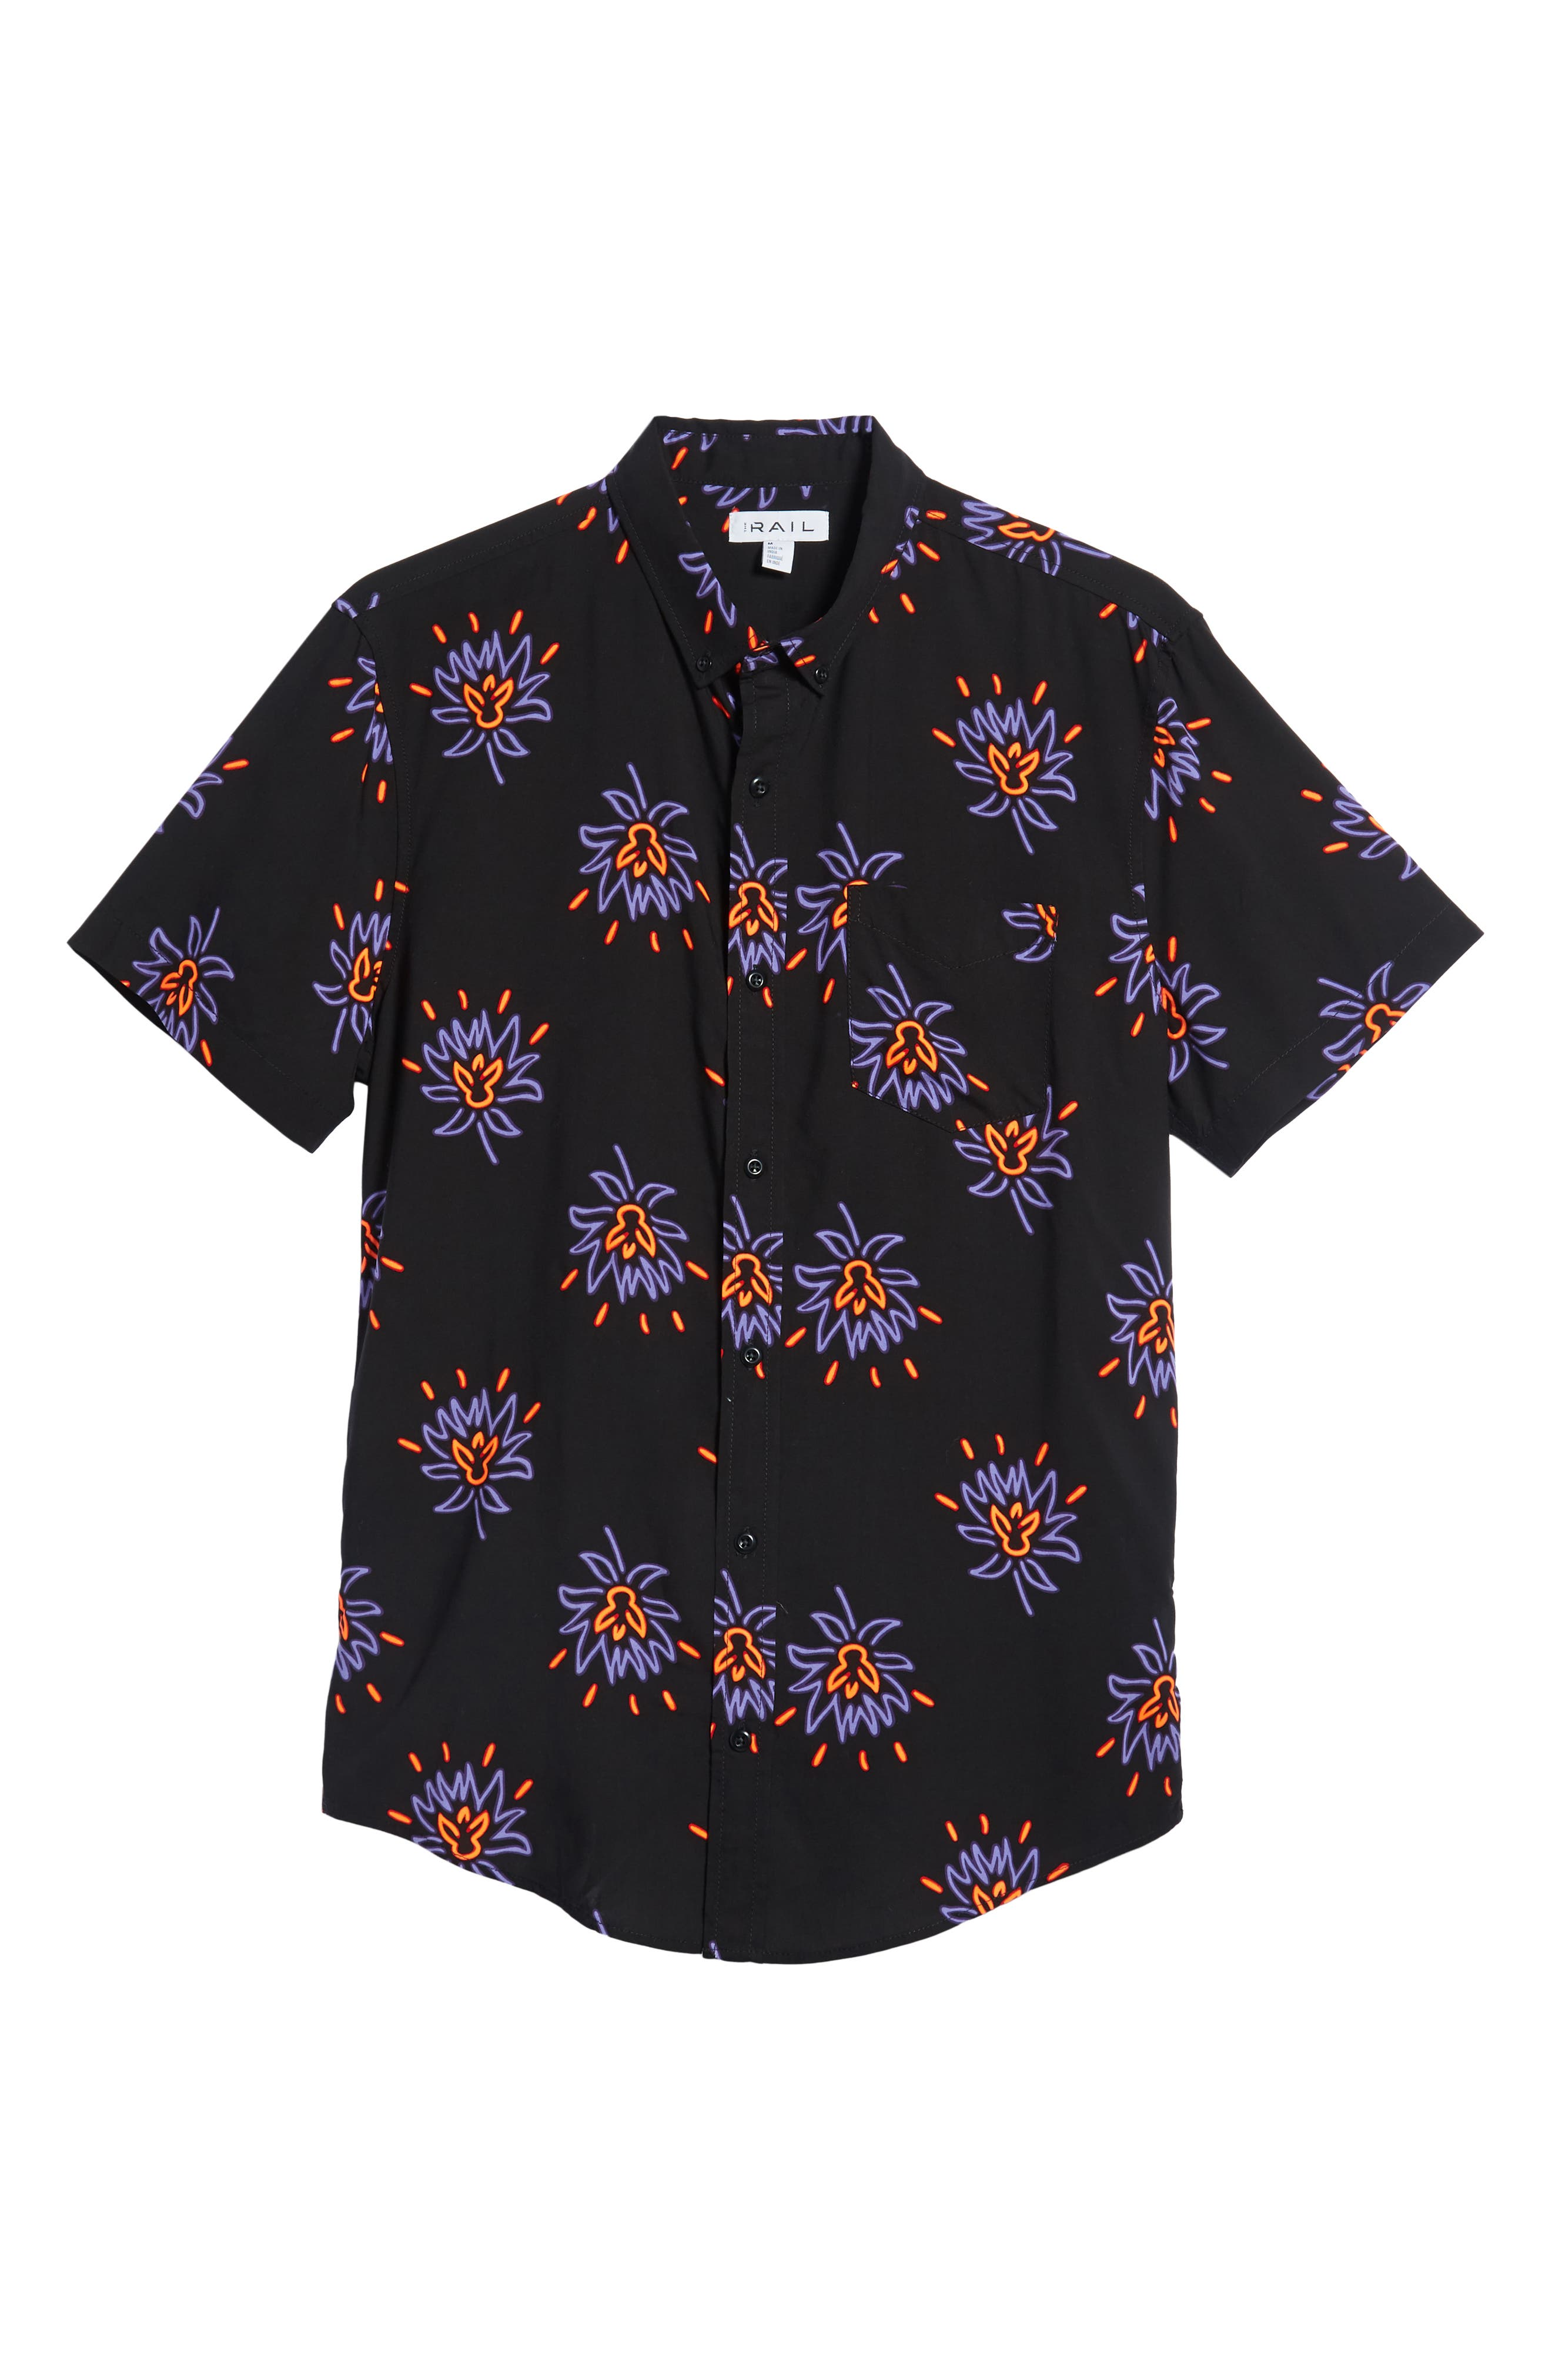 Neon Flower Print Woven Shirt,                             Alternate thumbnail 6, color,                             BLACK PURPLE NEON FLORAL